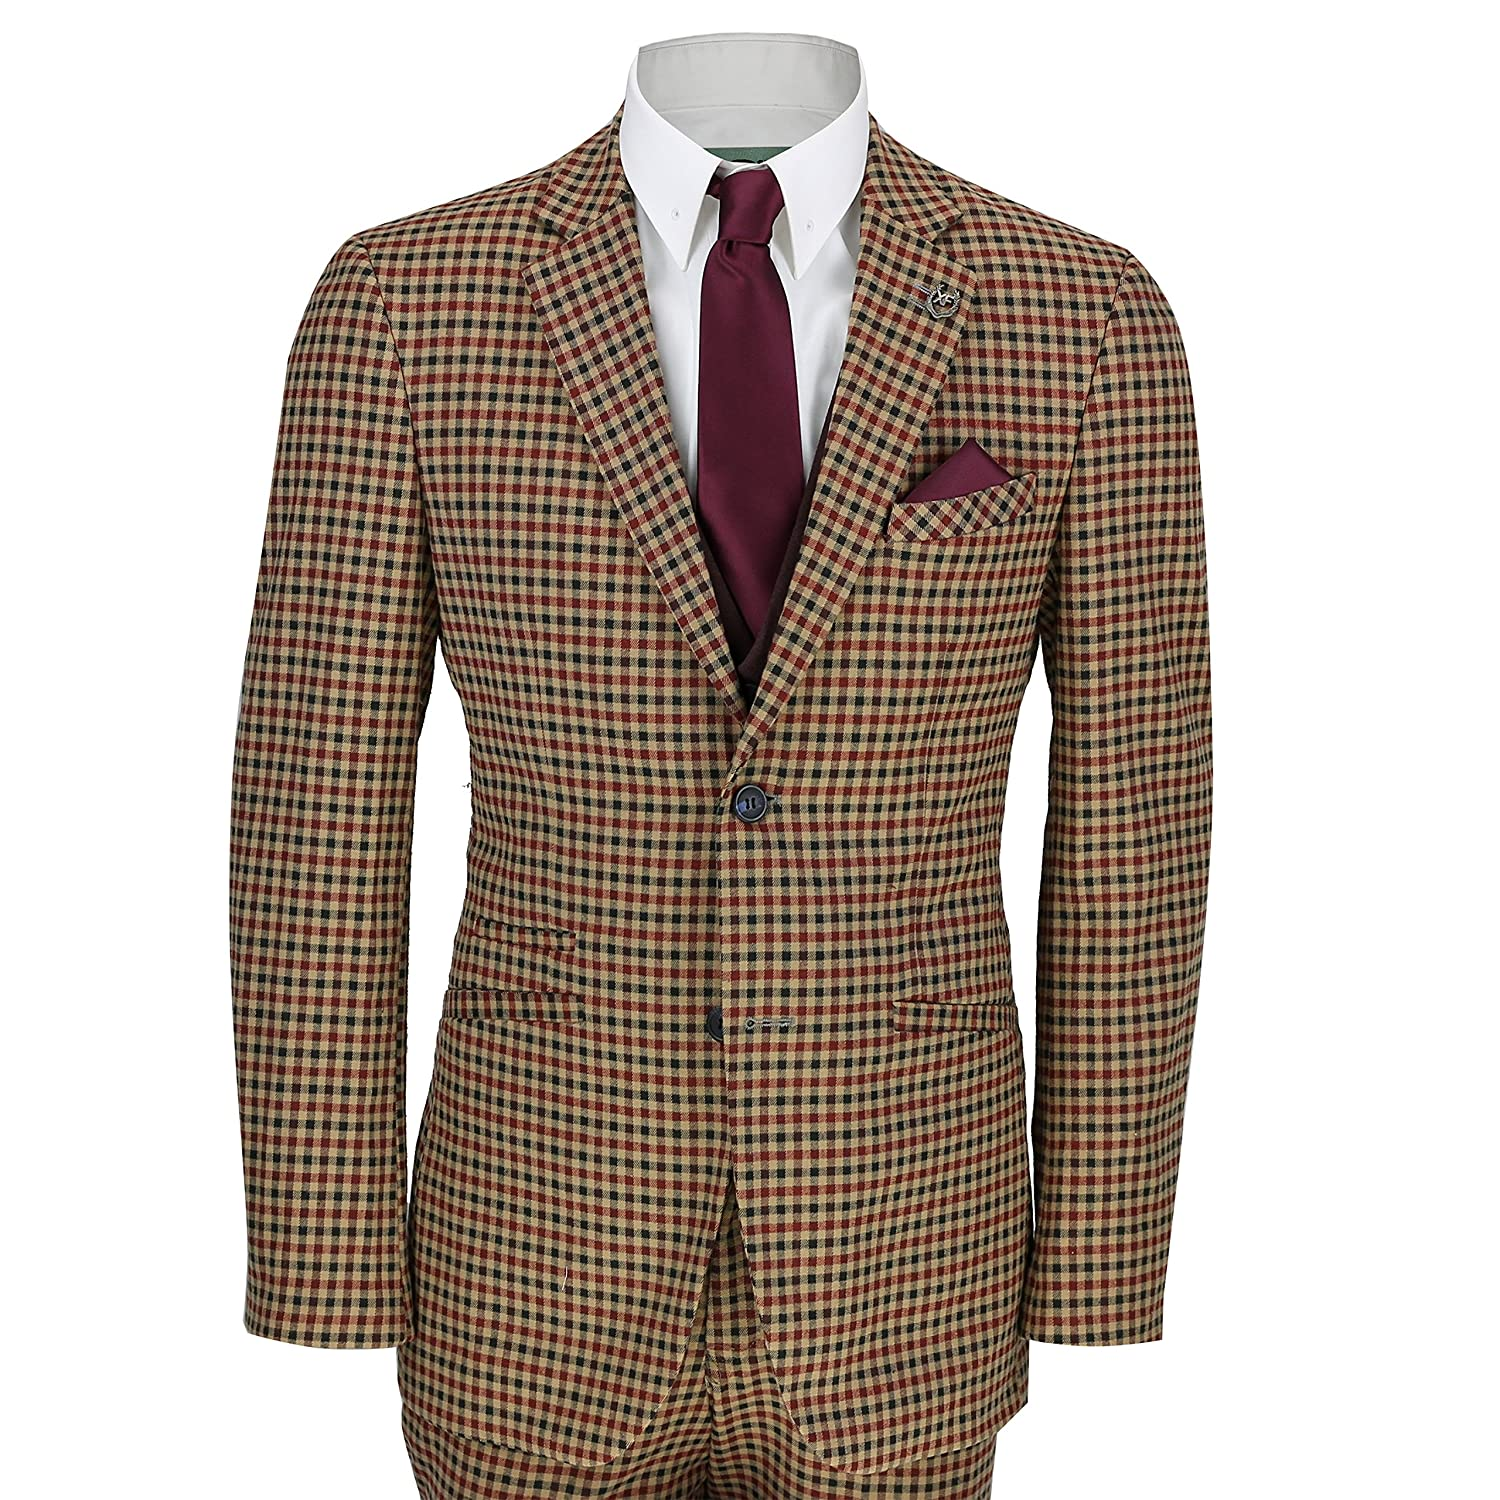 1960s Mens Suits | 70s Mens Disco Suits Xposed Mens Vintage 3 Piece Plaid Tartan Check Slim Tailored Fit Suit Jacket Waistcoat Trouser £104.99 AT vintagedancer.com